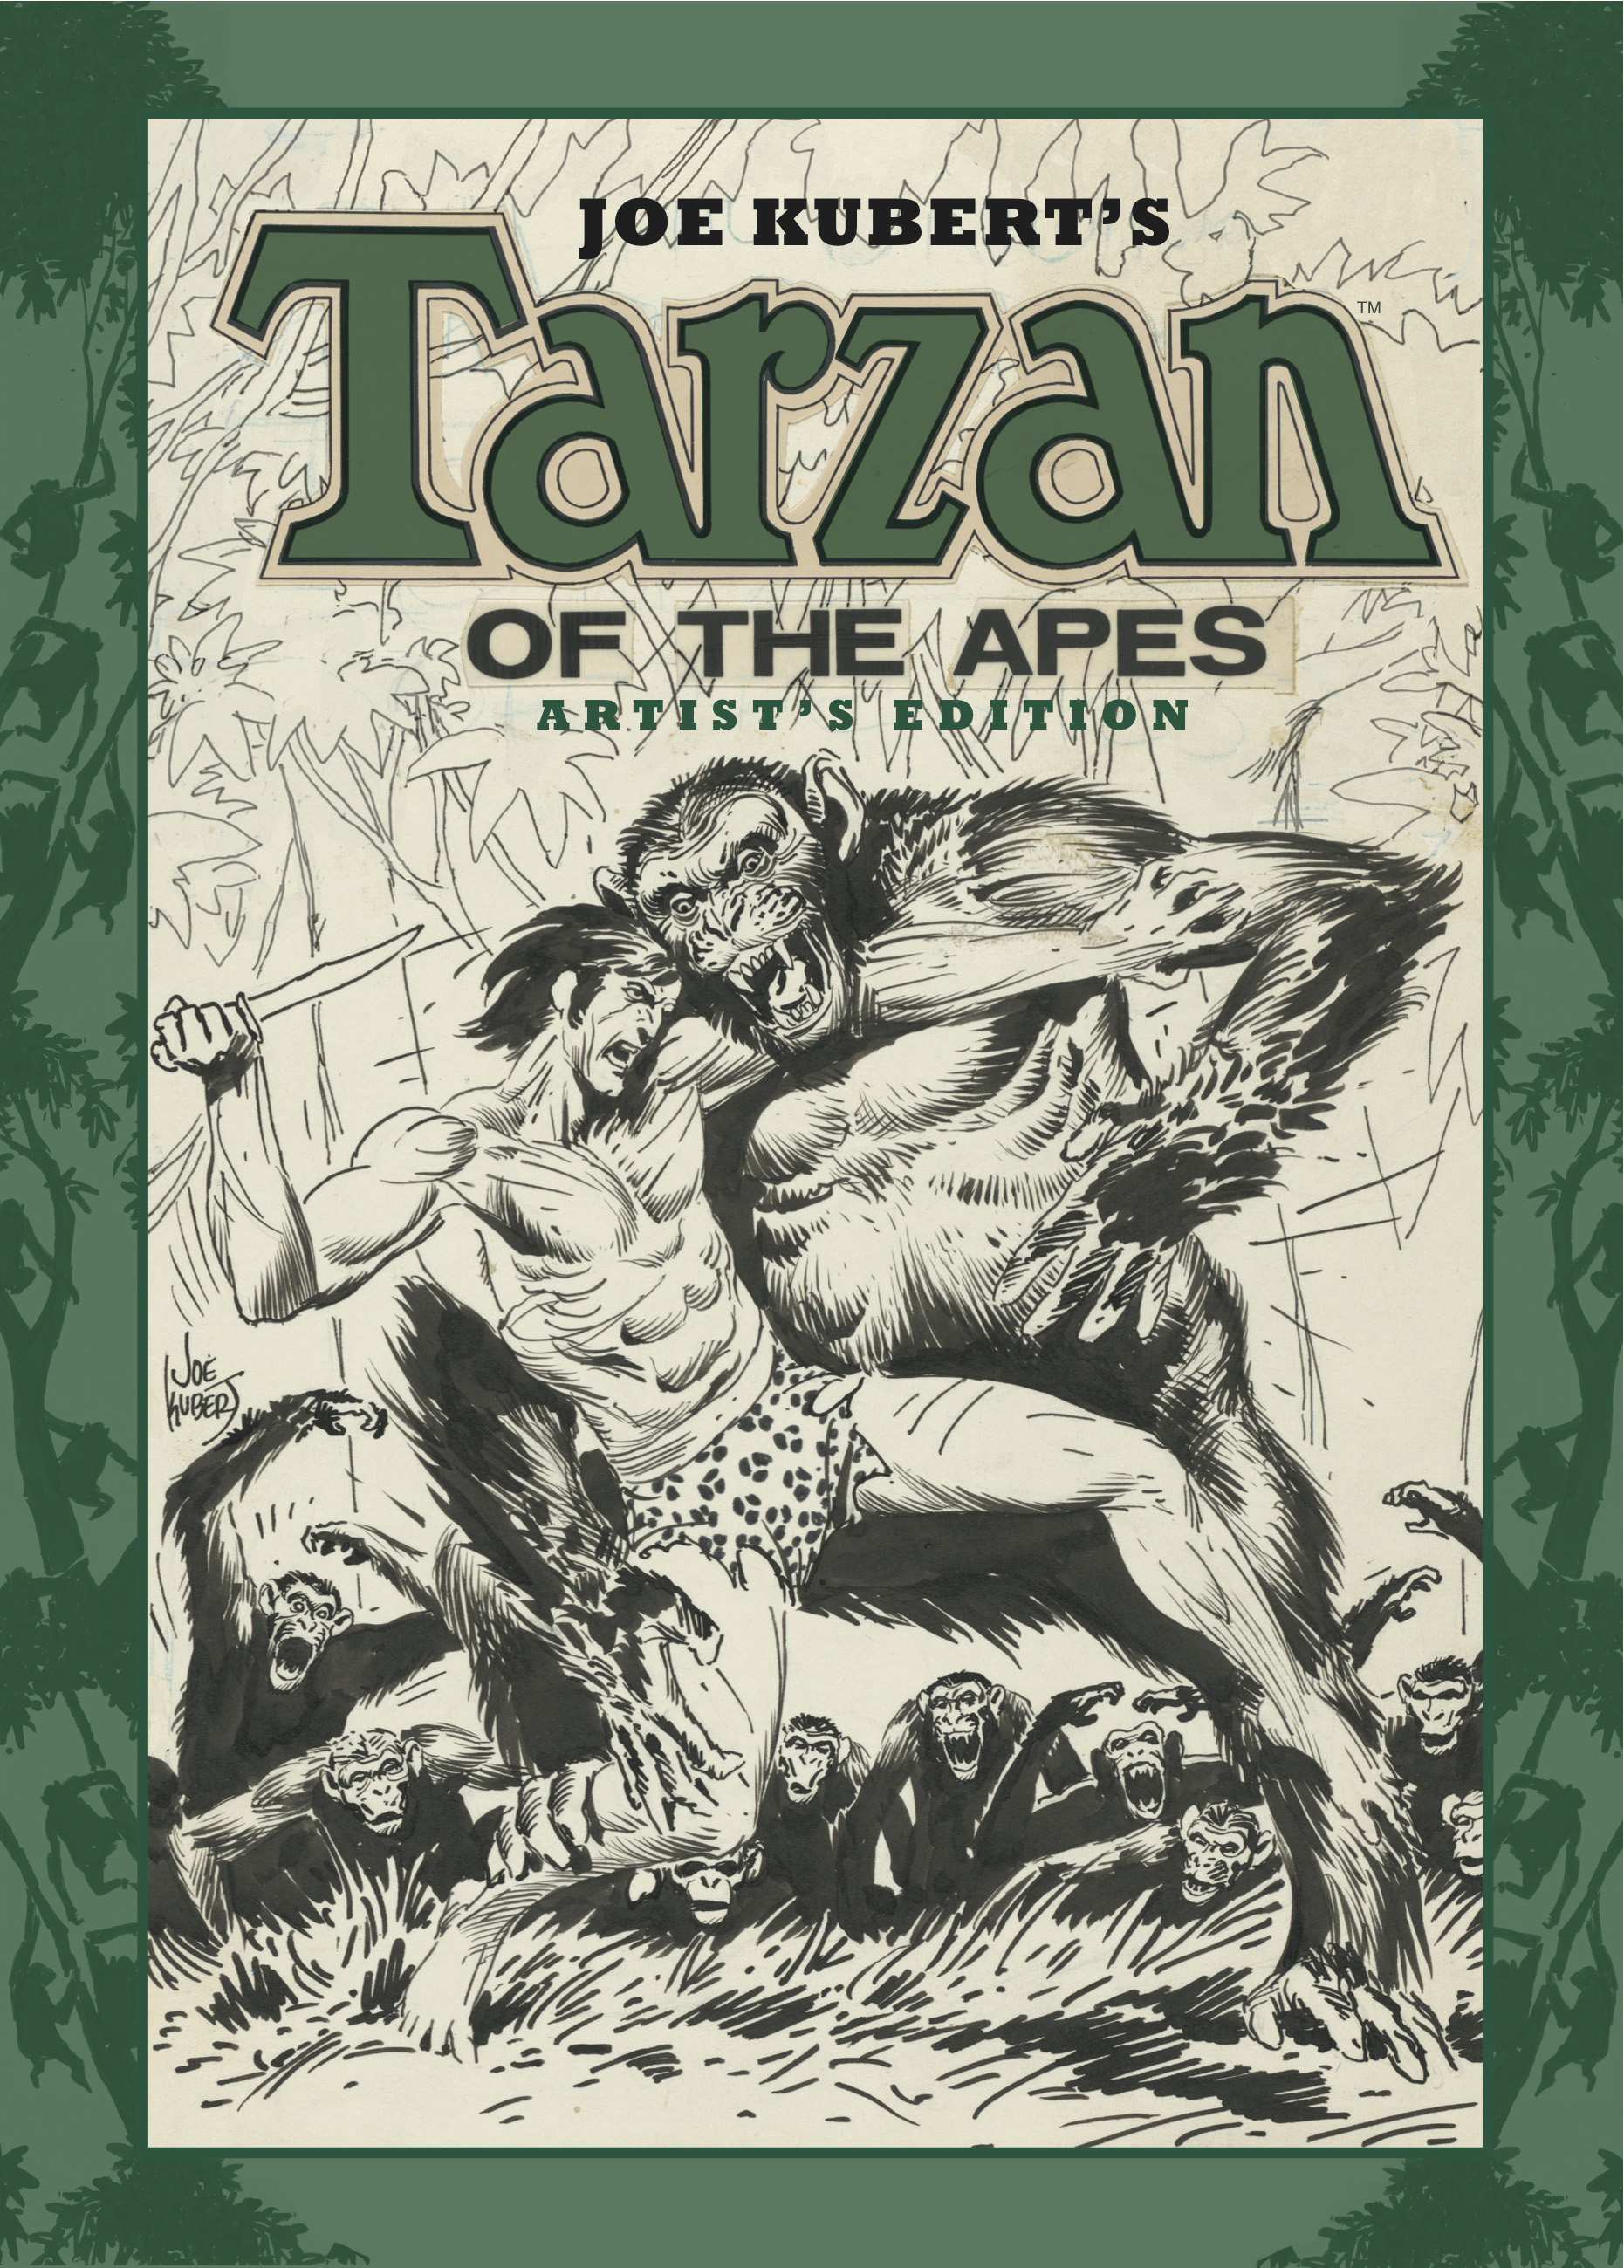 [Tarzan Artist Edition Cover]